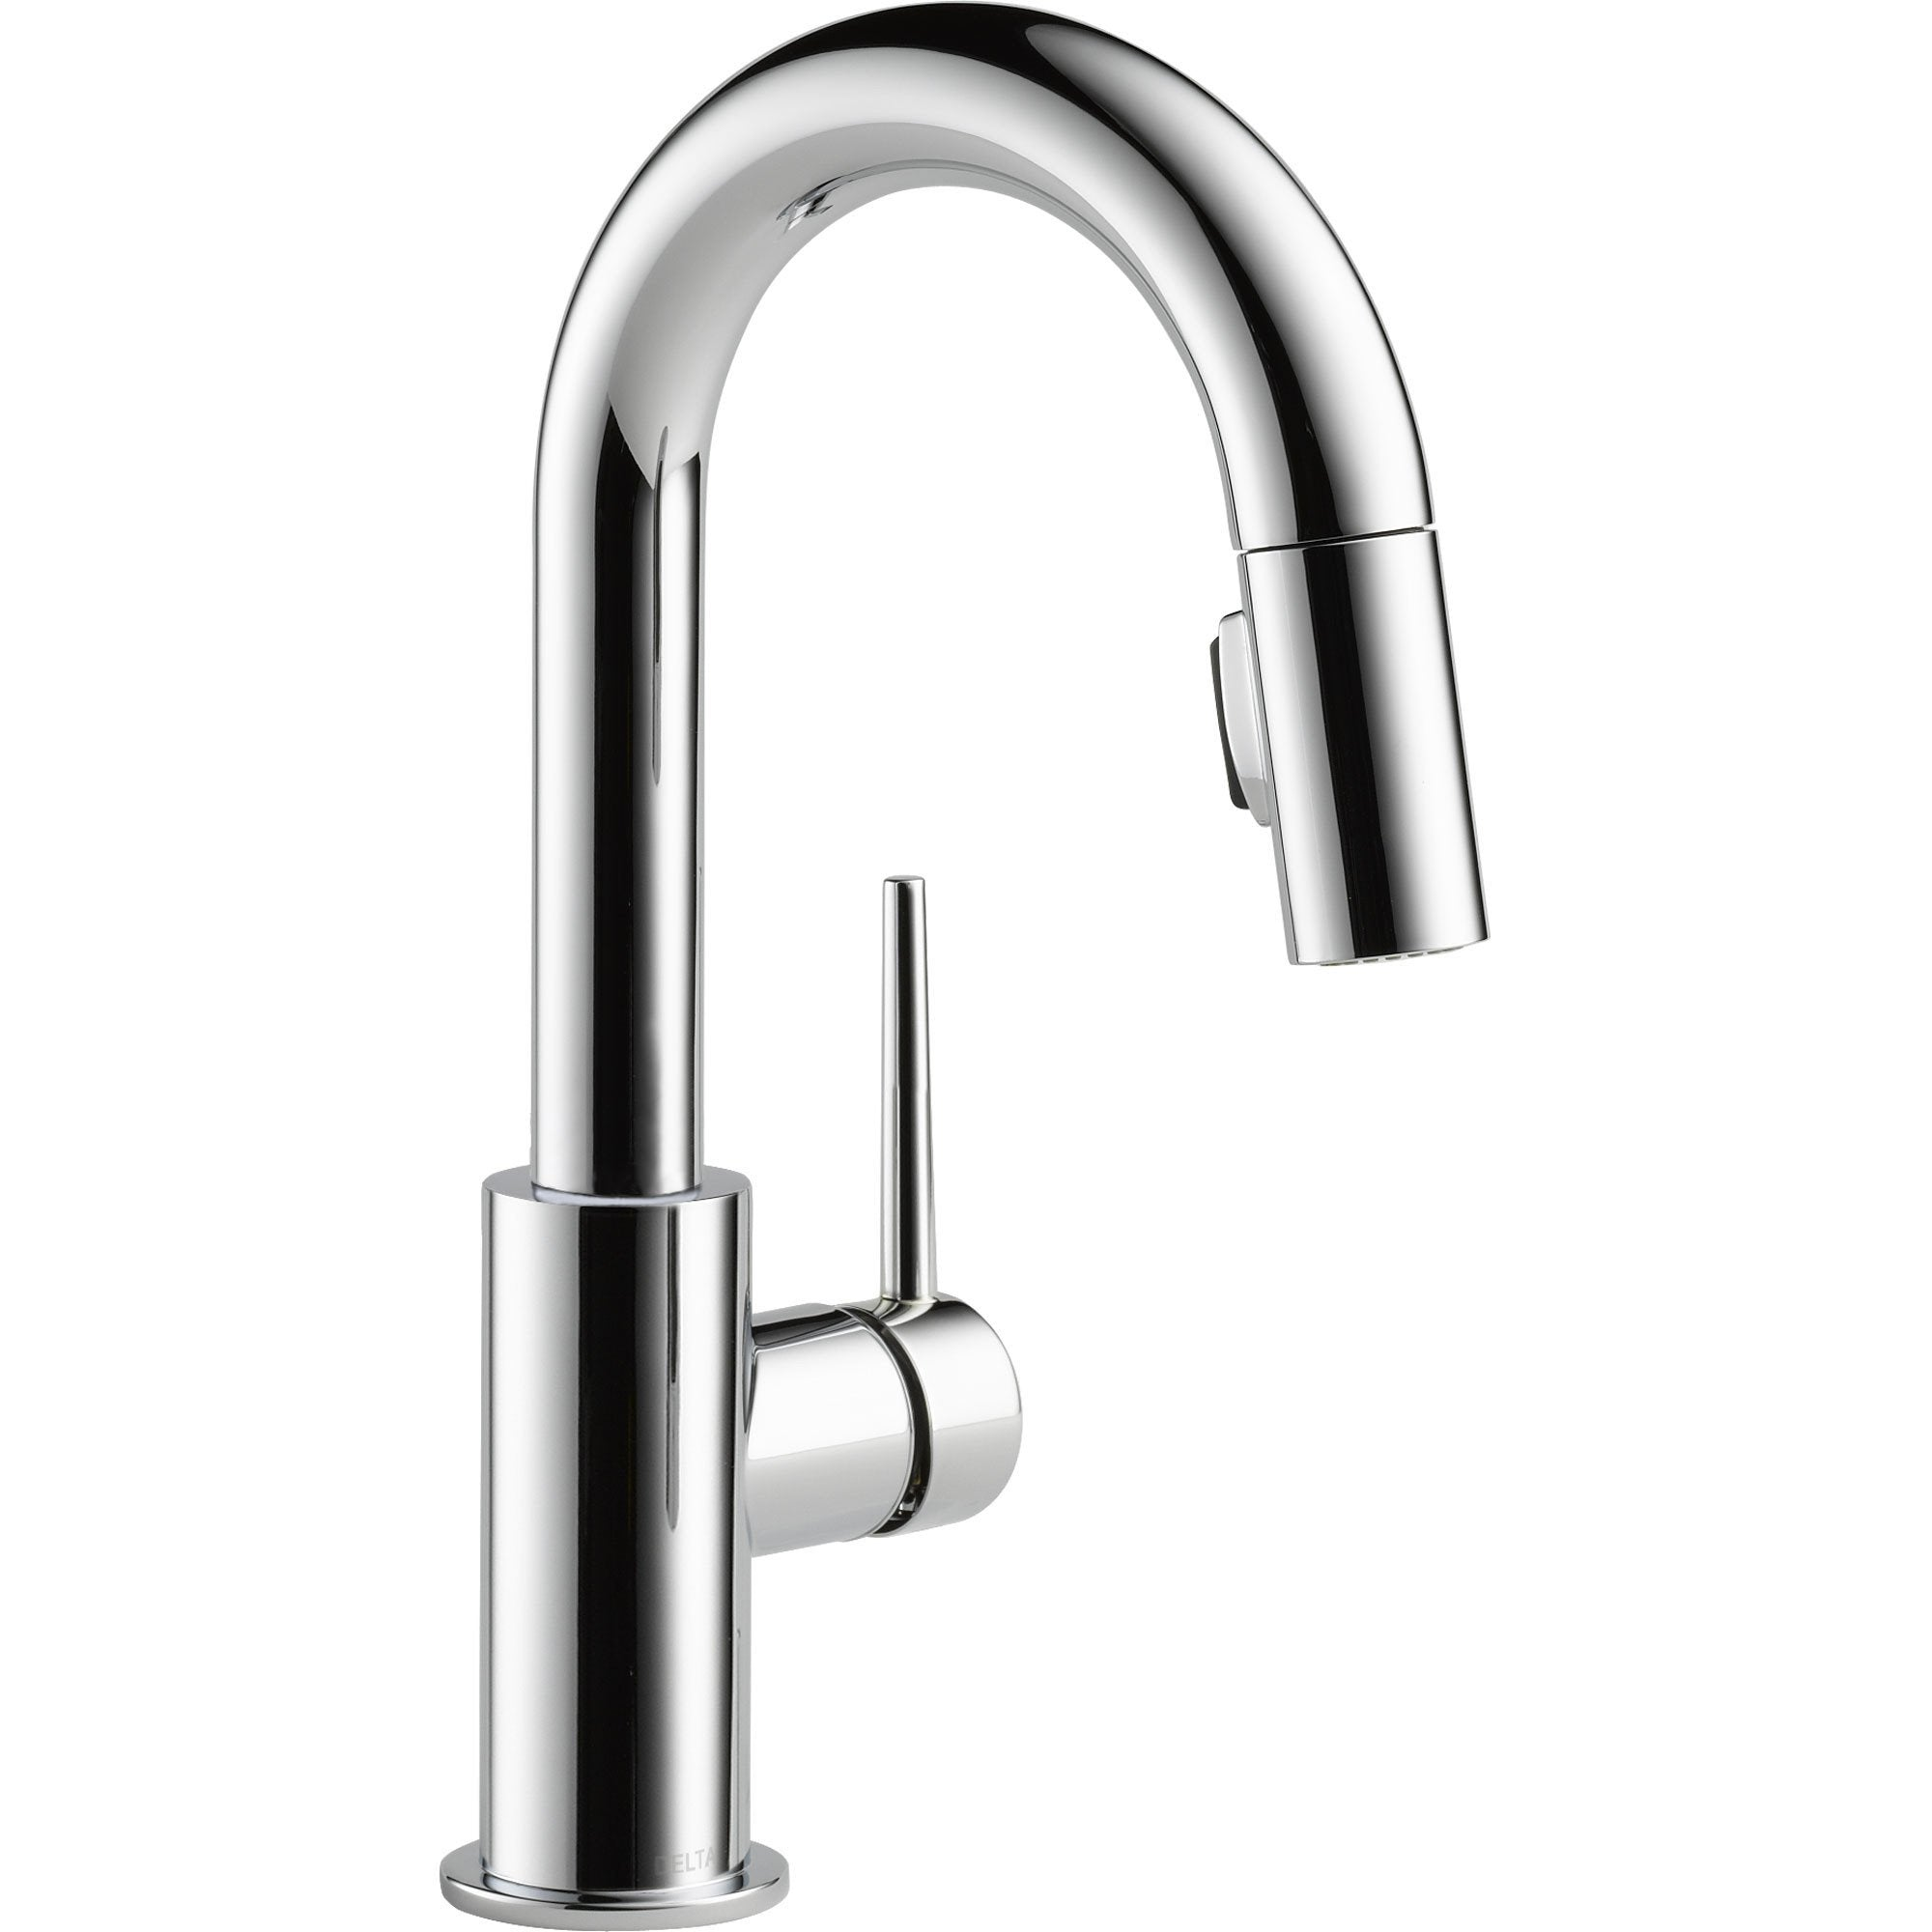 Delta Trinsic Modern Chrome Single Handle Pull-Down Sprayer Bar Faucet 542656